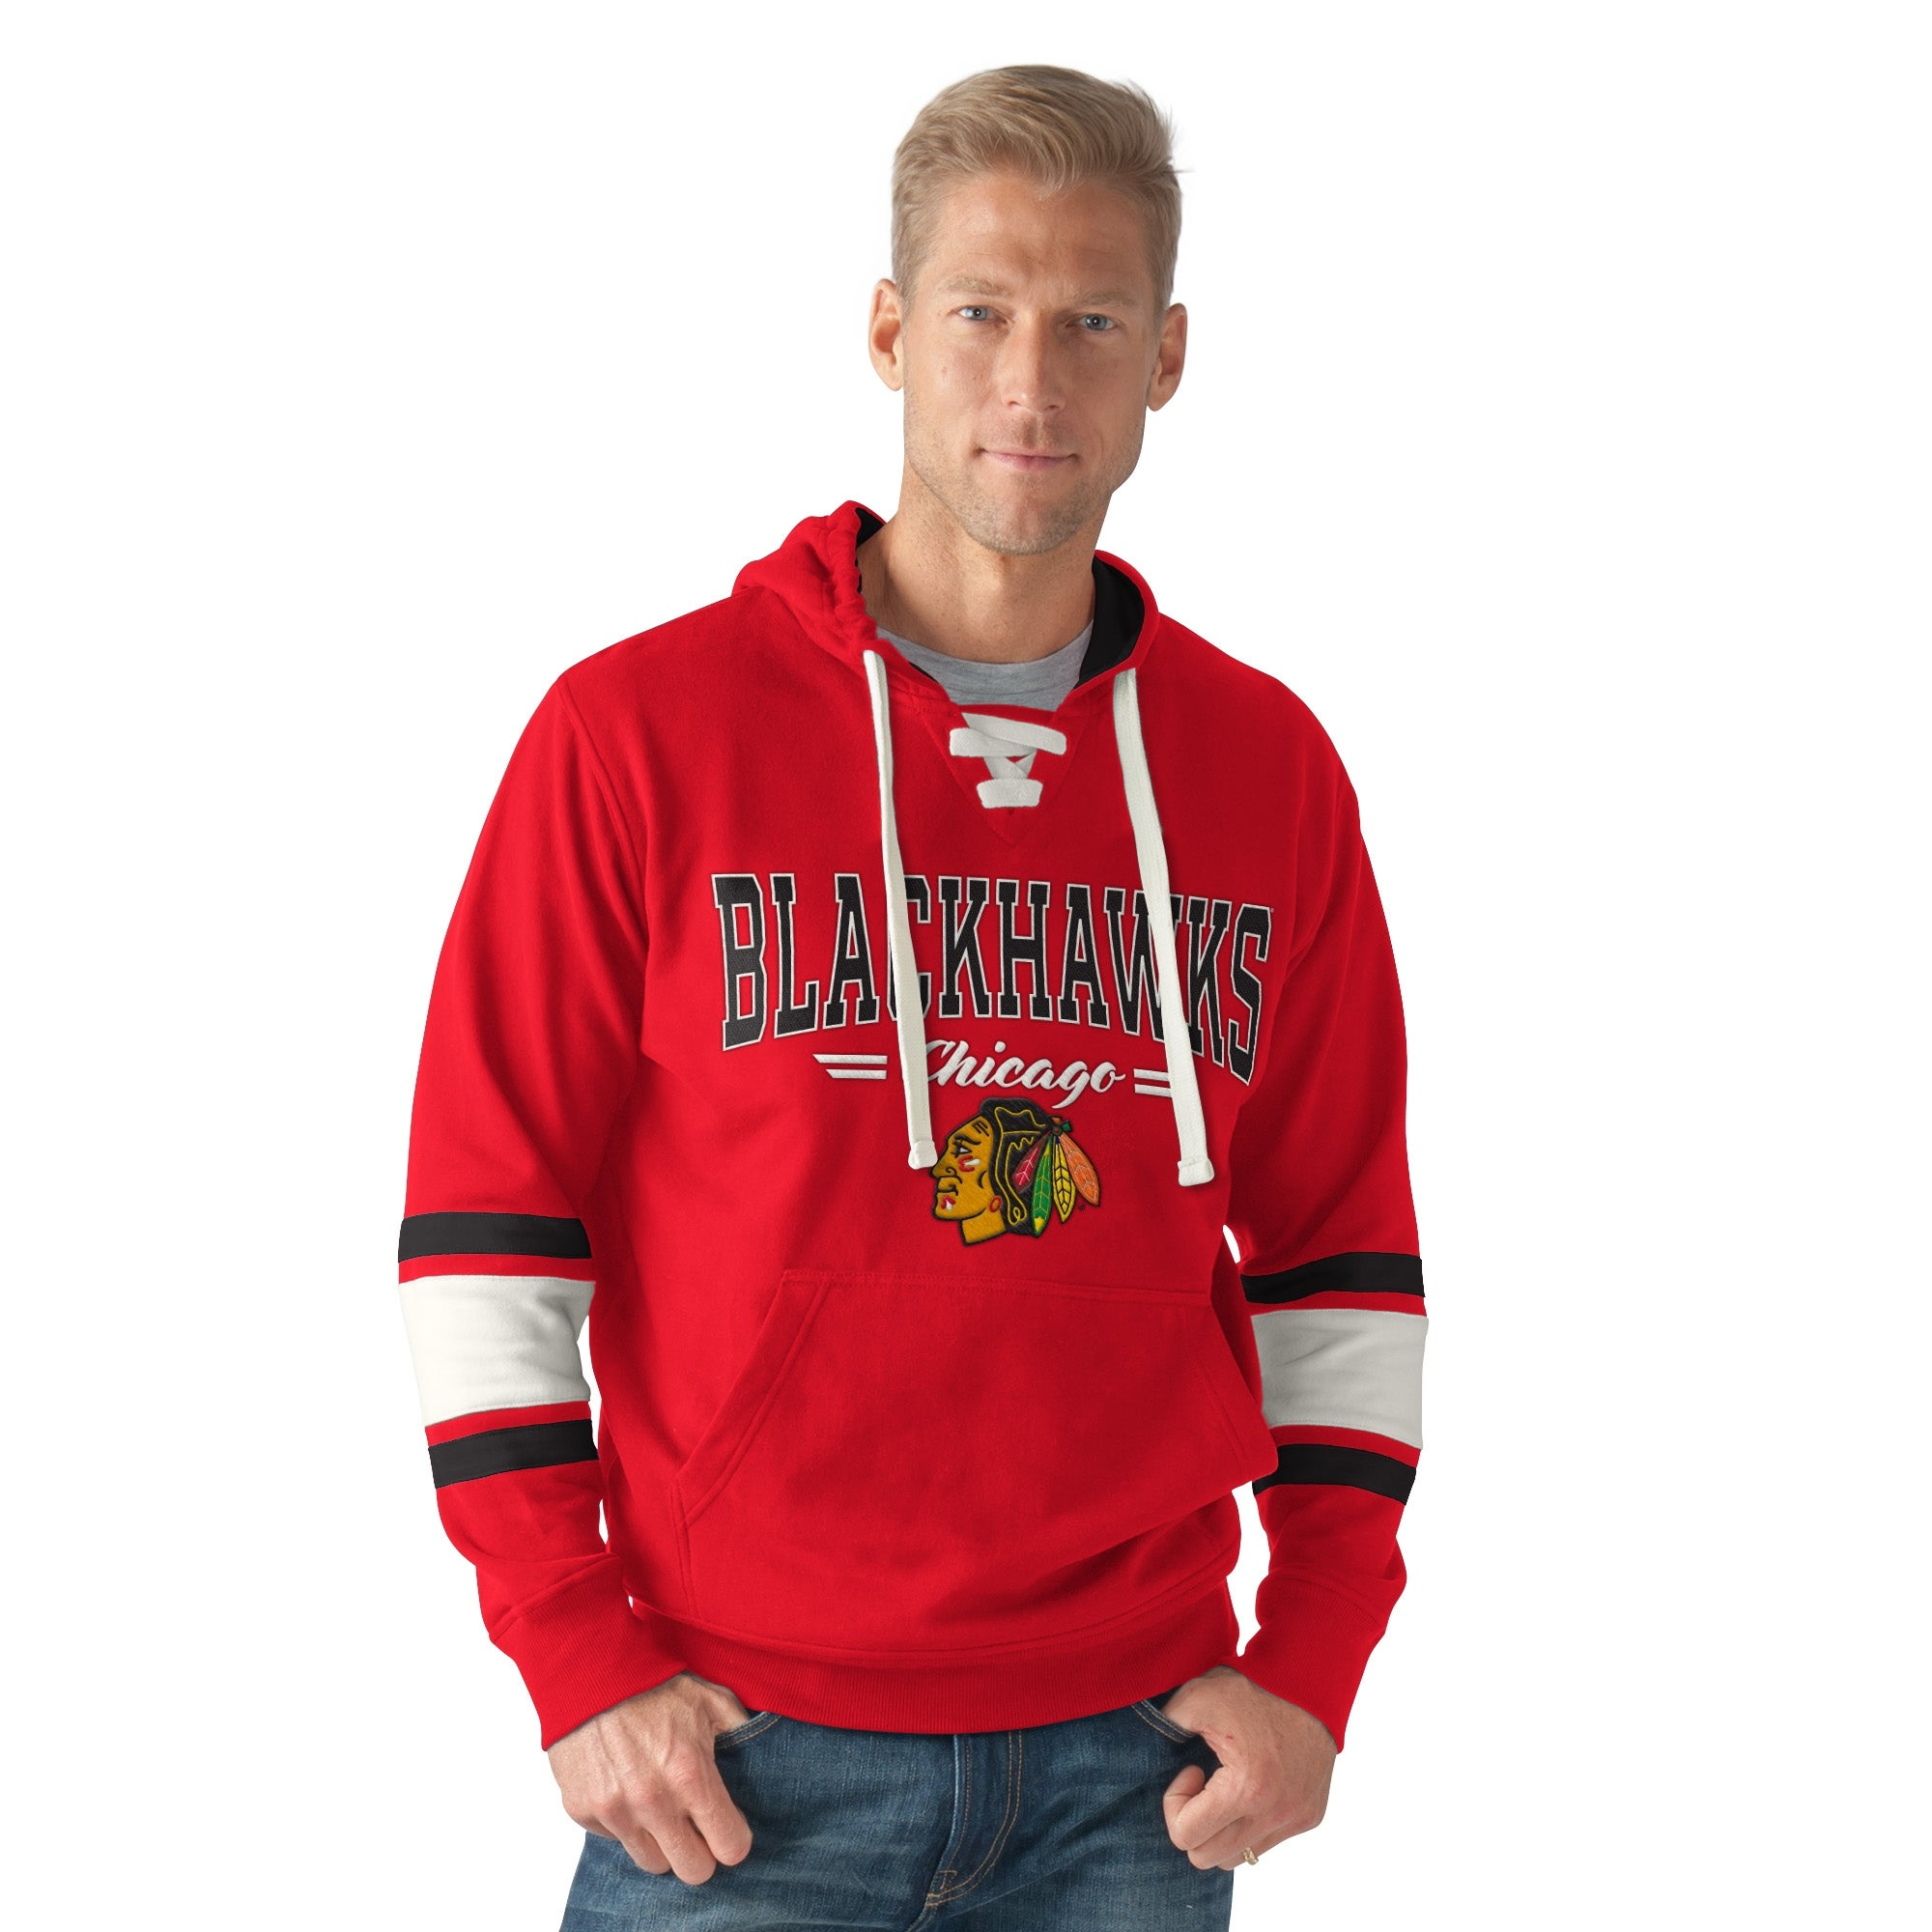 finest selection ef80b 9b2a3 Chicago Blackhawks Icing Men's Lace Up Fleece Pullover Hoodie